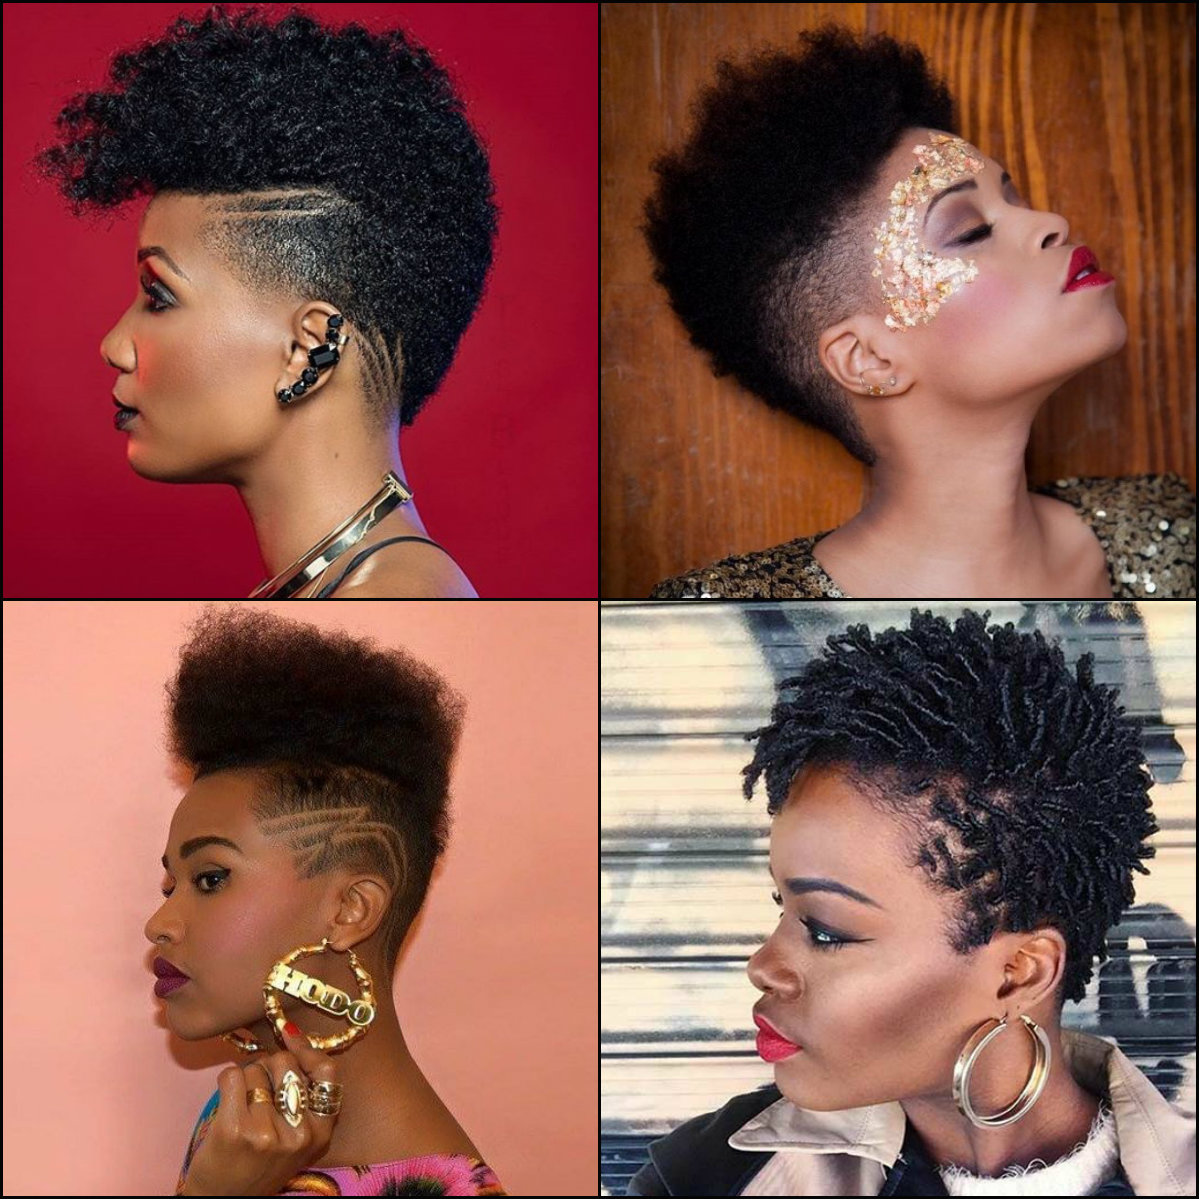 Black Women Fade Haircuts To Look Edgy and Sexy ...